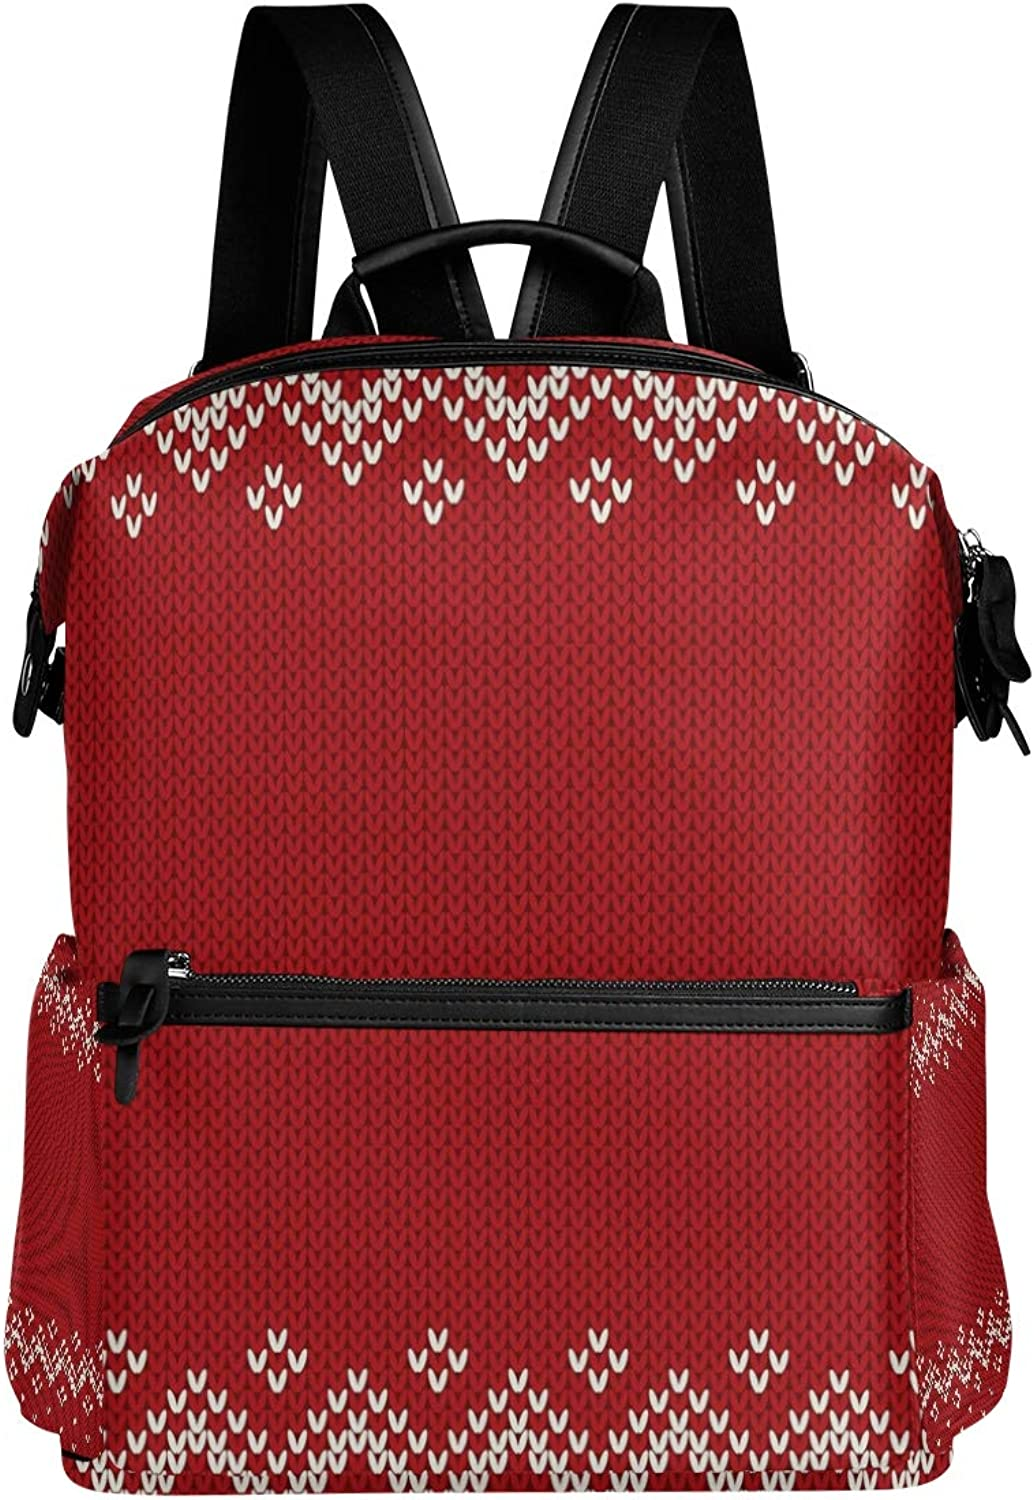 MONTOJ Red Classic Knitting Pattern Leather Travel Bag Campus Backpack